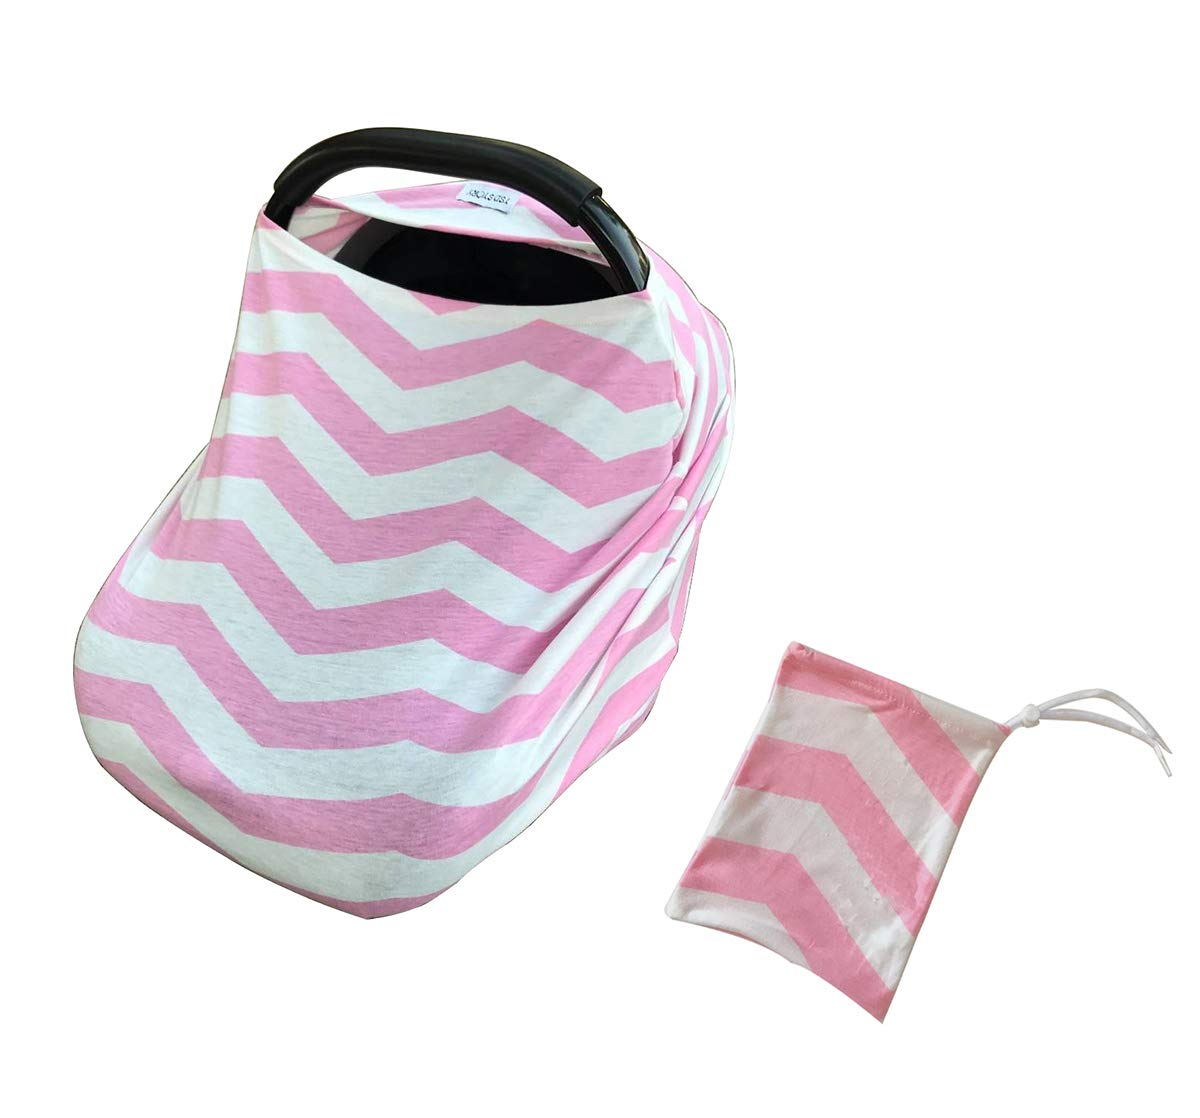 Baby Car Seat Covers-Nursing Cover Breastfeeding Scarf-Infant Stroller Cover,Carseat Canopy for Girls and Boys-Perfect Baby Shower Gift by TSD STORY(Pink White Chevron)